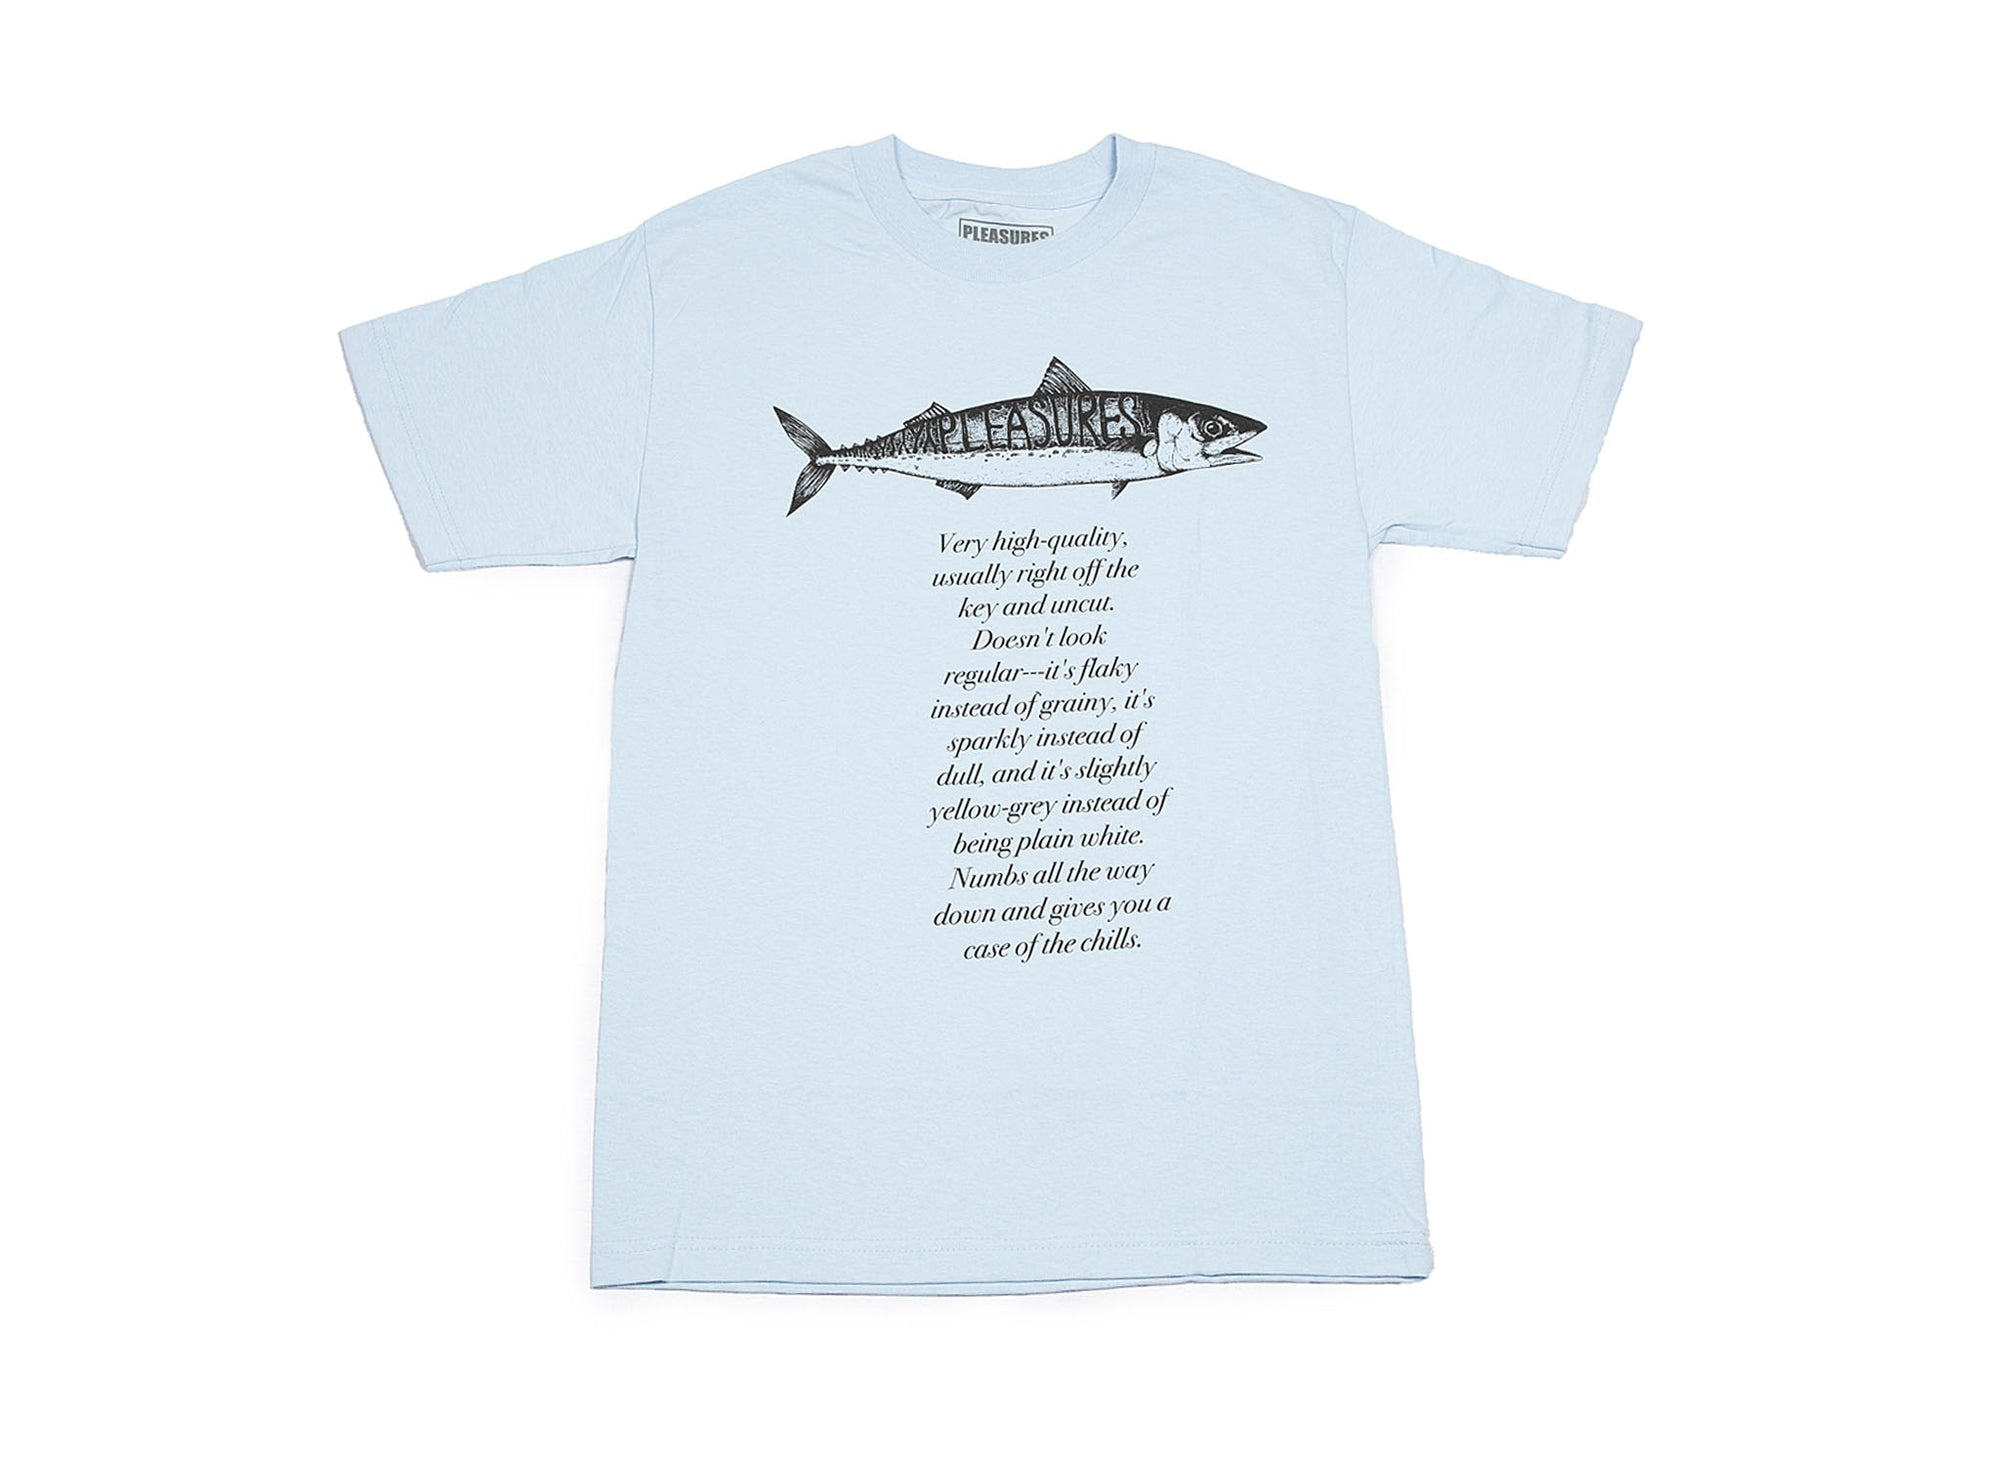 PLEASURES CATCH TEE SHIRT